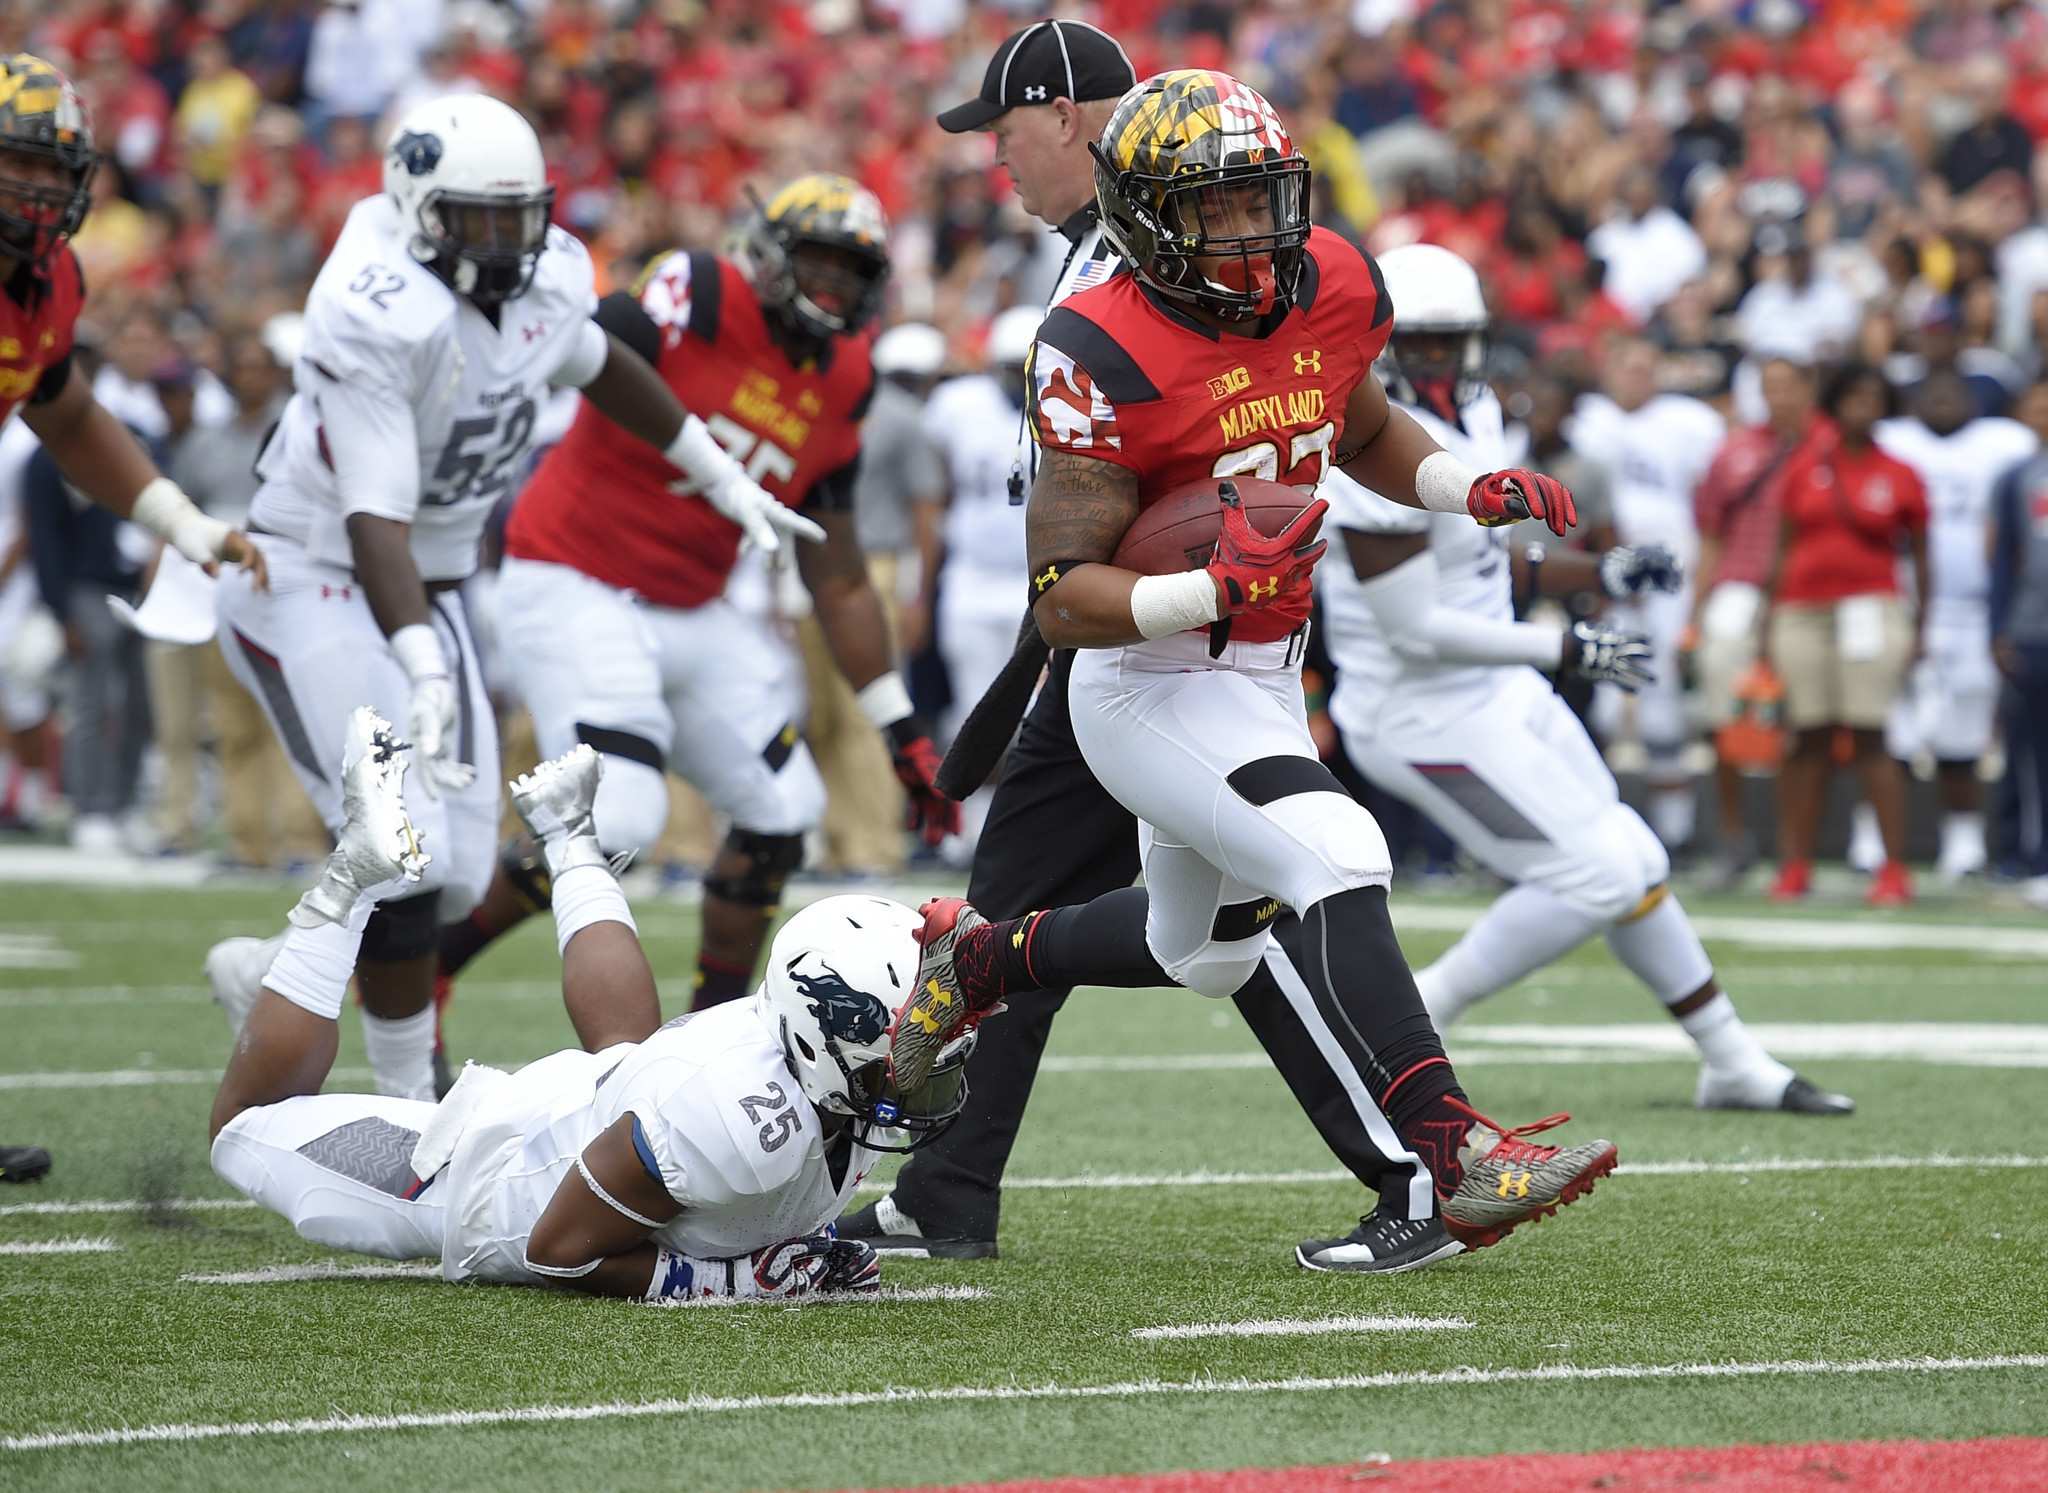 maryland football - photo #28